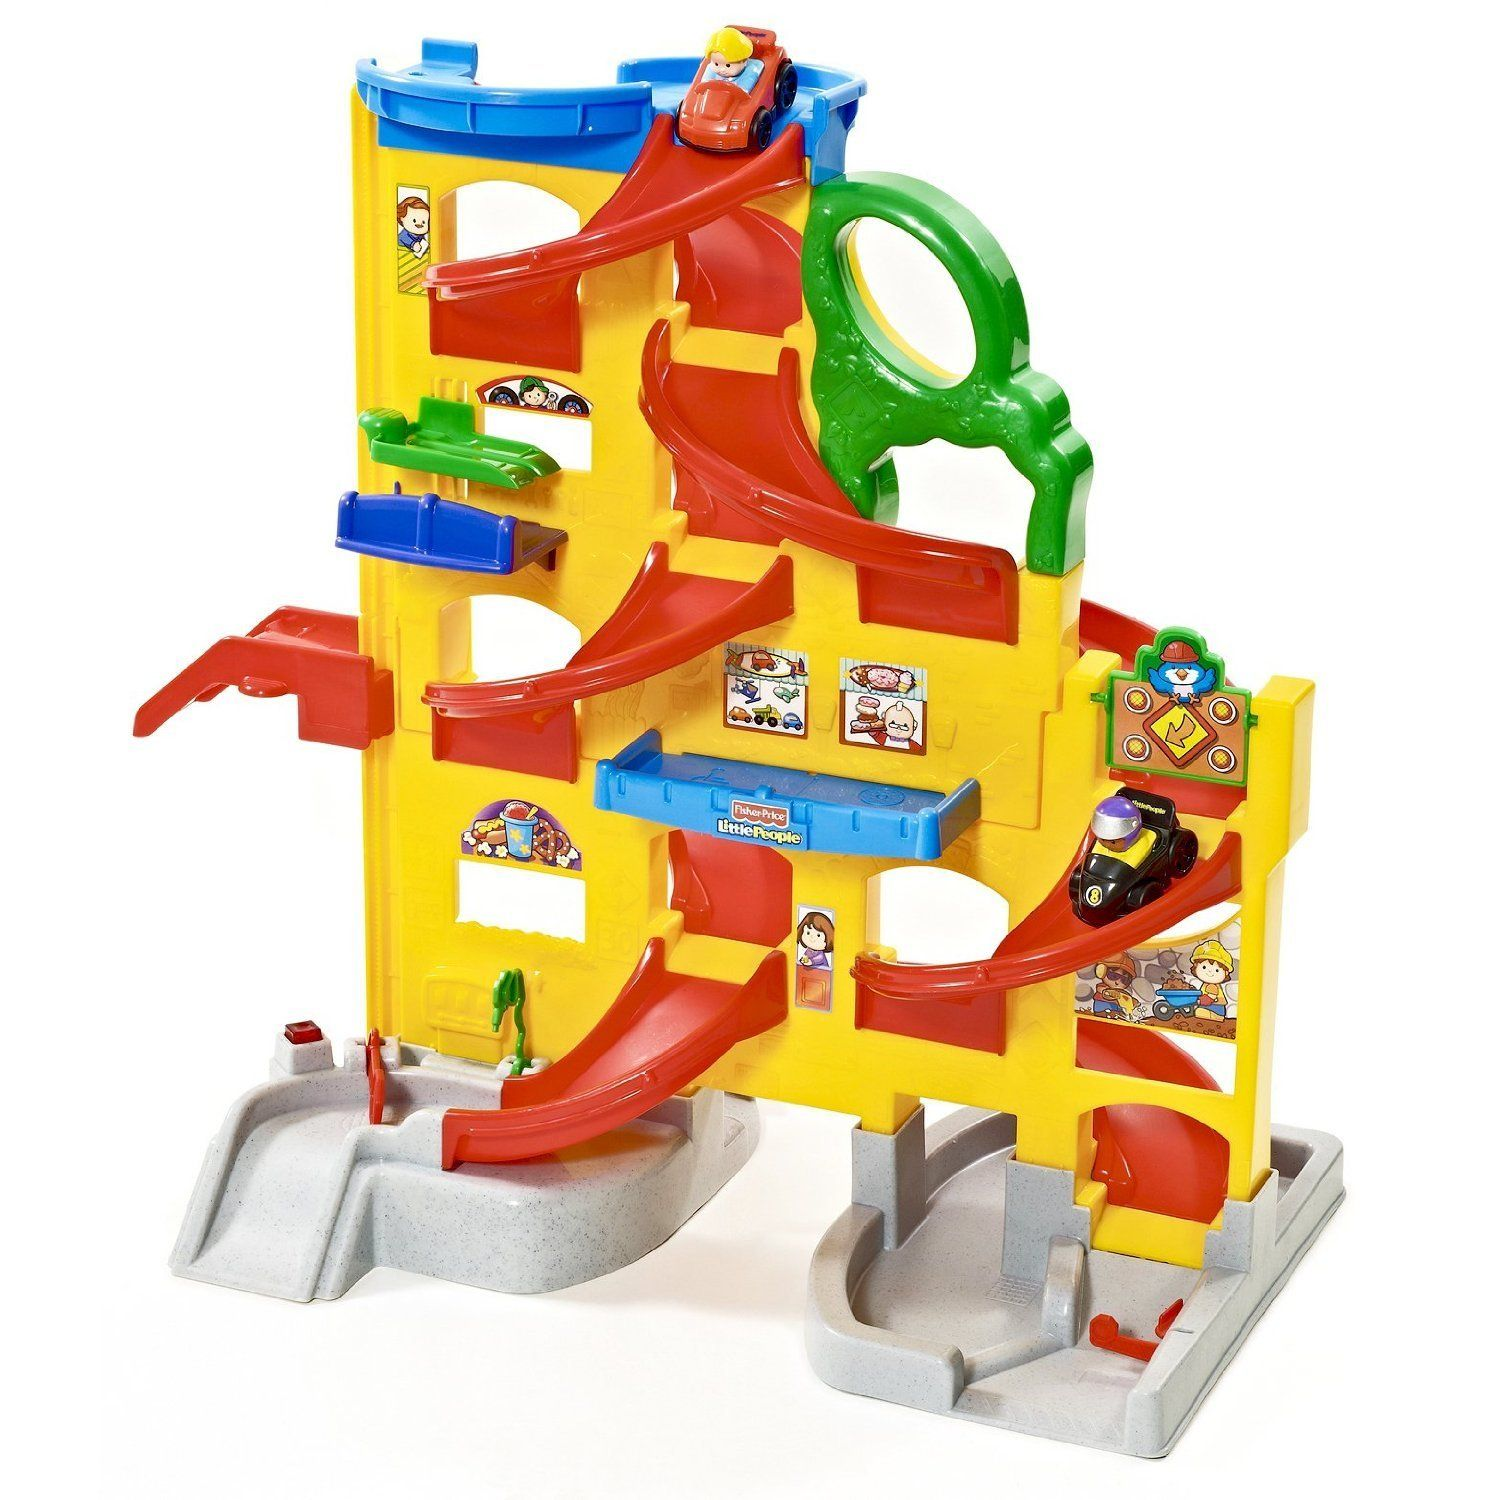 Little people car toys  FisherPrice Little People Wheelies Stand and Play Rampway Playset